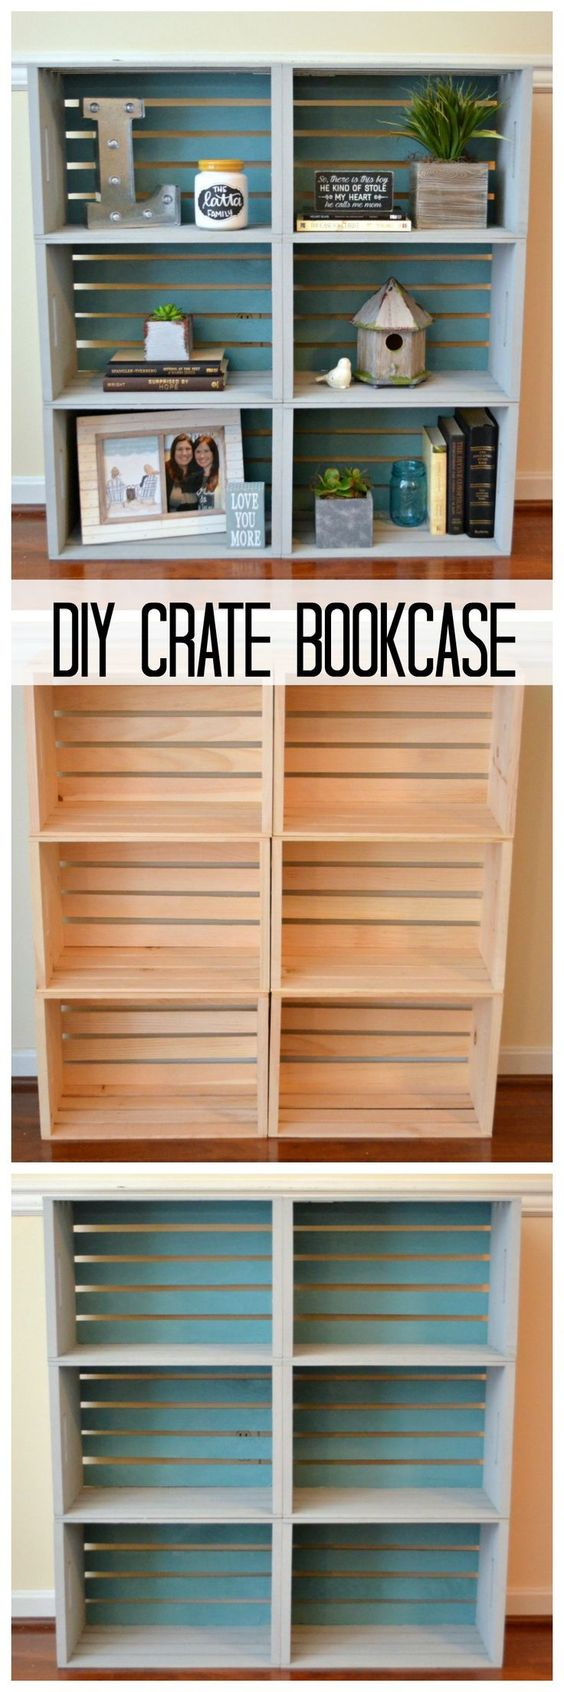 3 DIY Wood Crate Projects With Lots of Tutorials